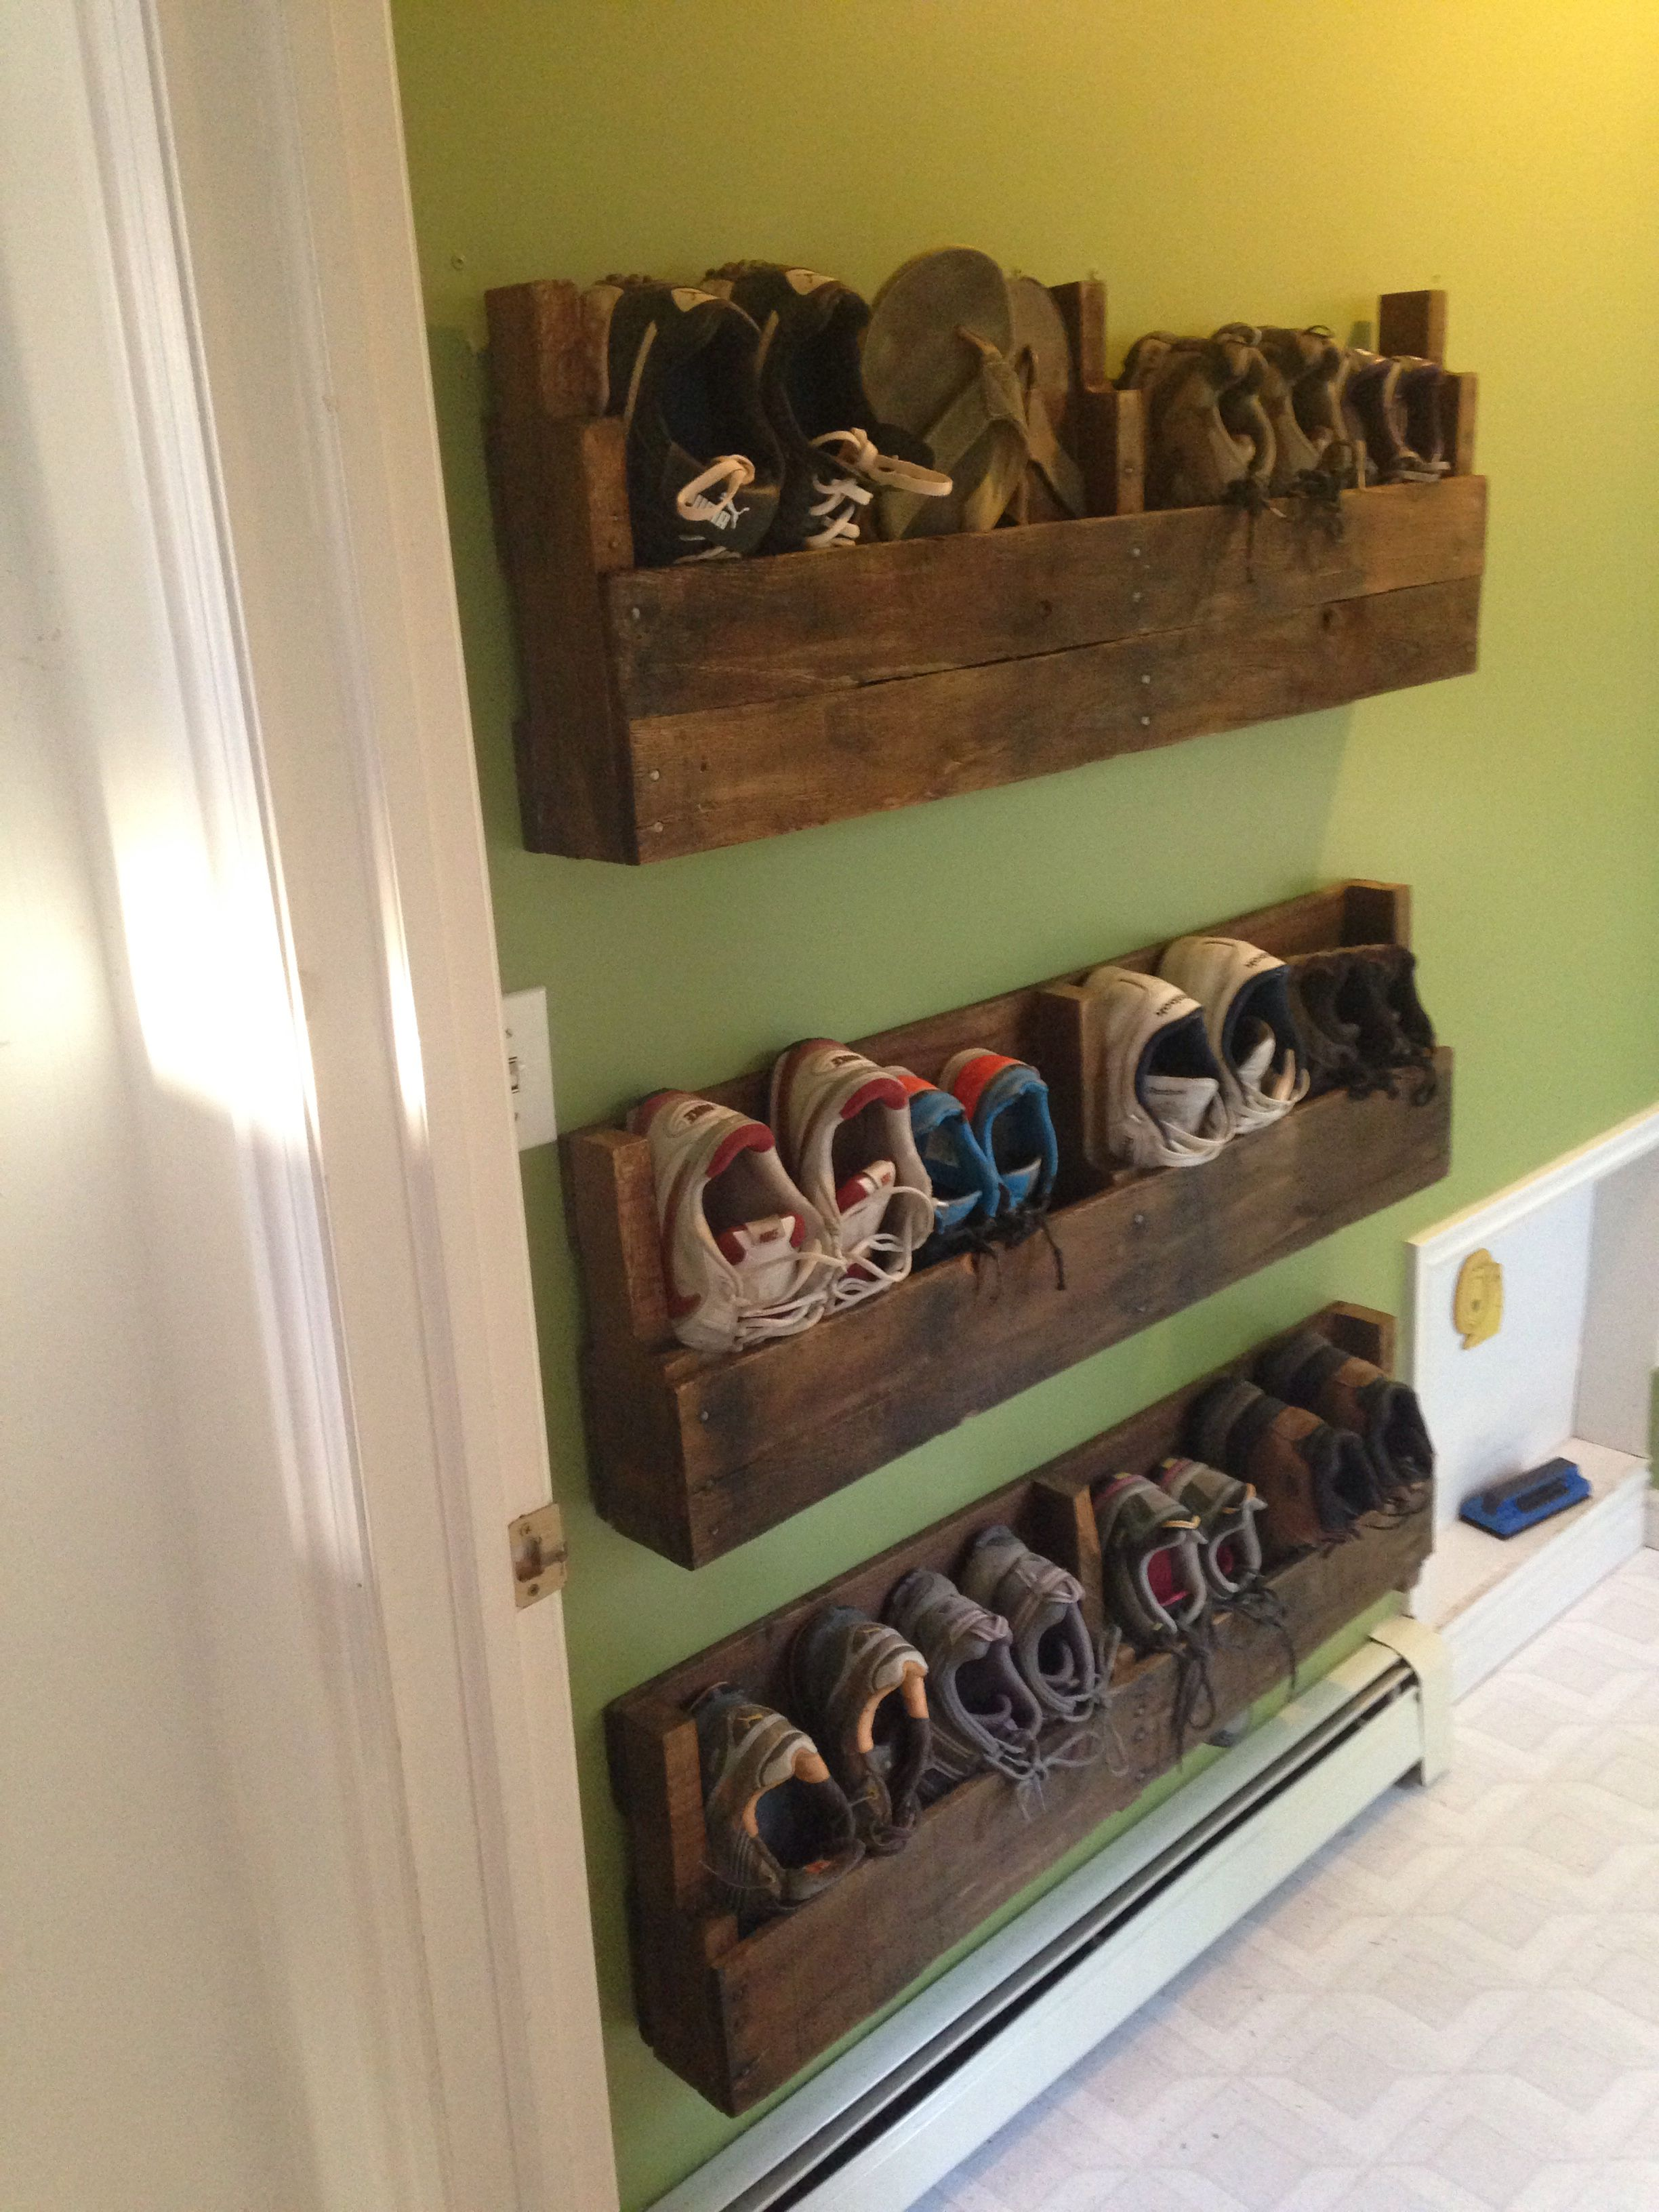 30 Shoe Storage Ideas For Small Spaces Garage Ideas Schuhregal Paletten Mobelideen Holzpaletten